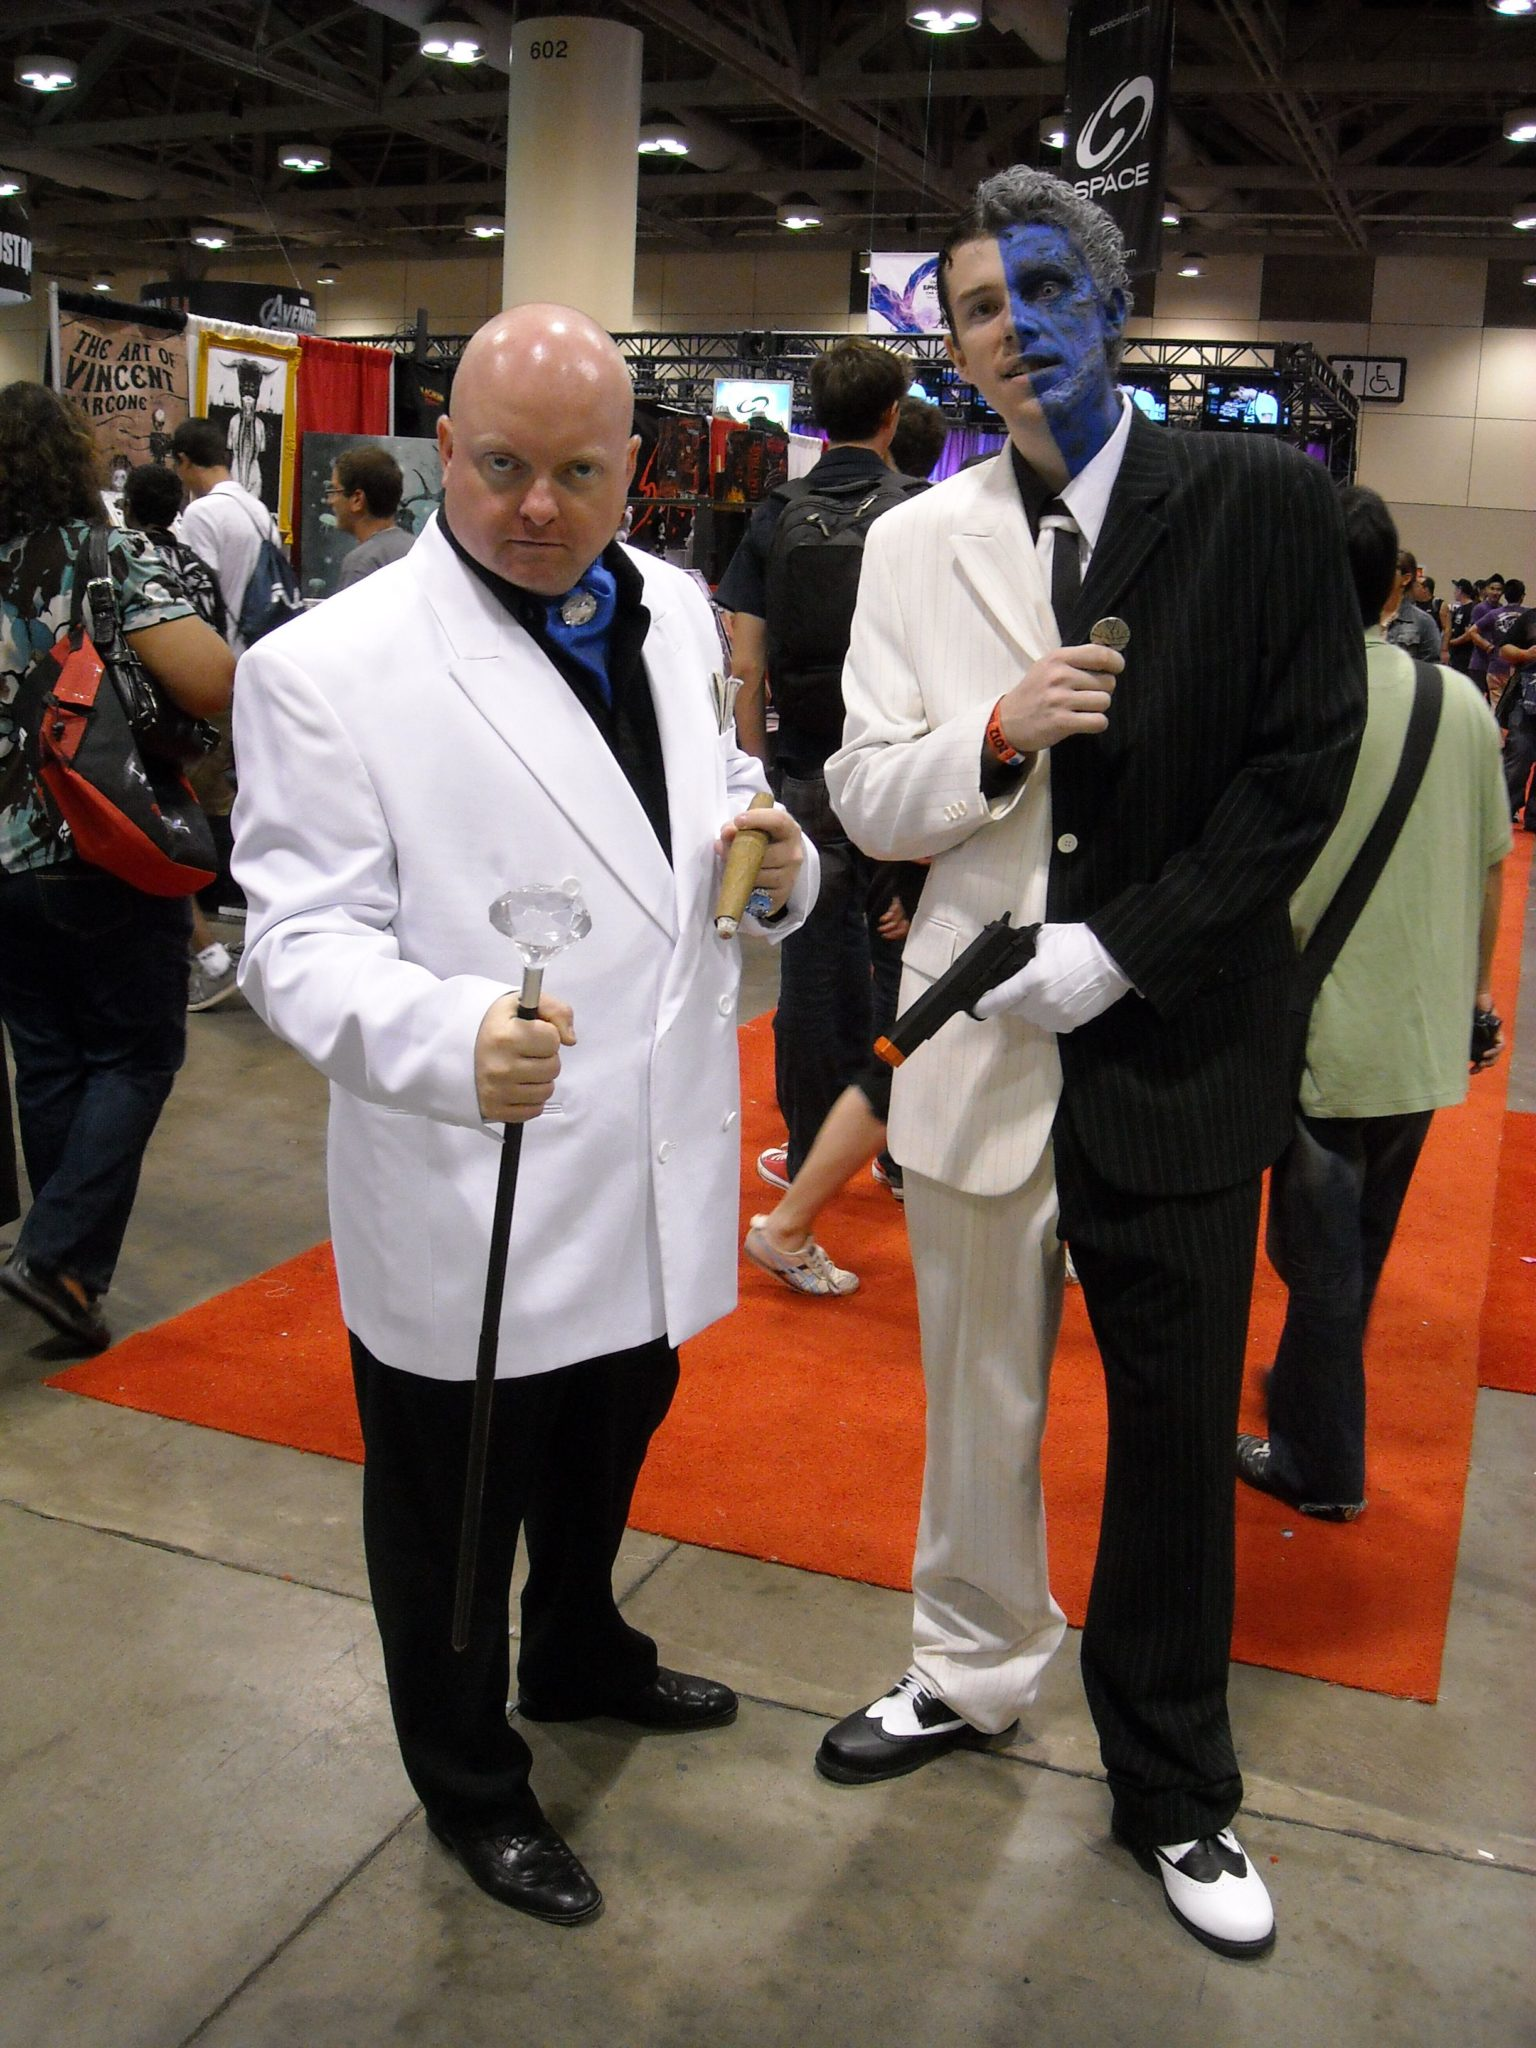 kingpin halloween costume & weu0027ve collected 25 costumes that are